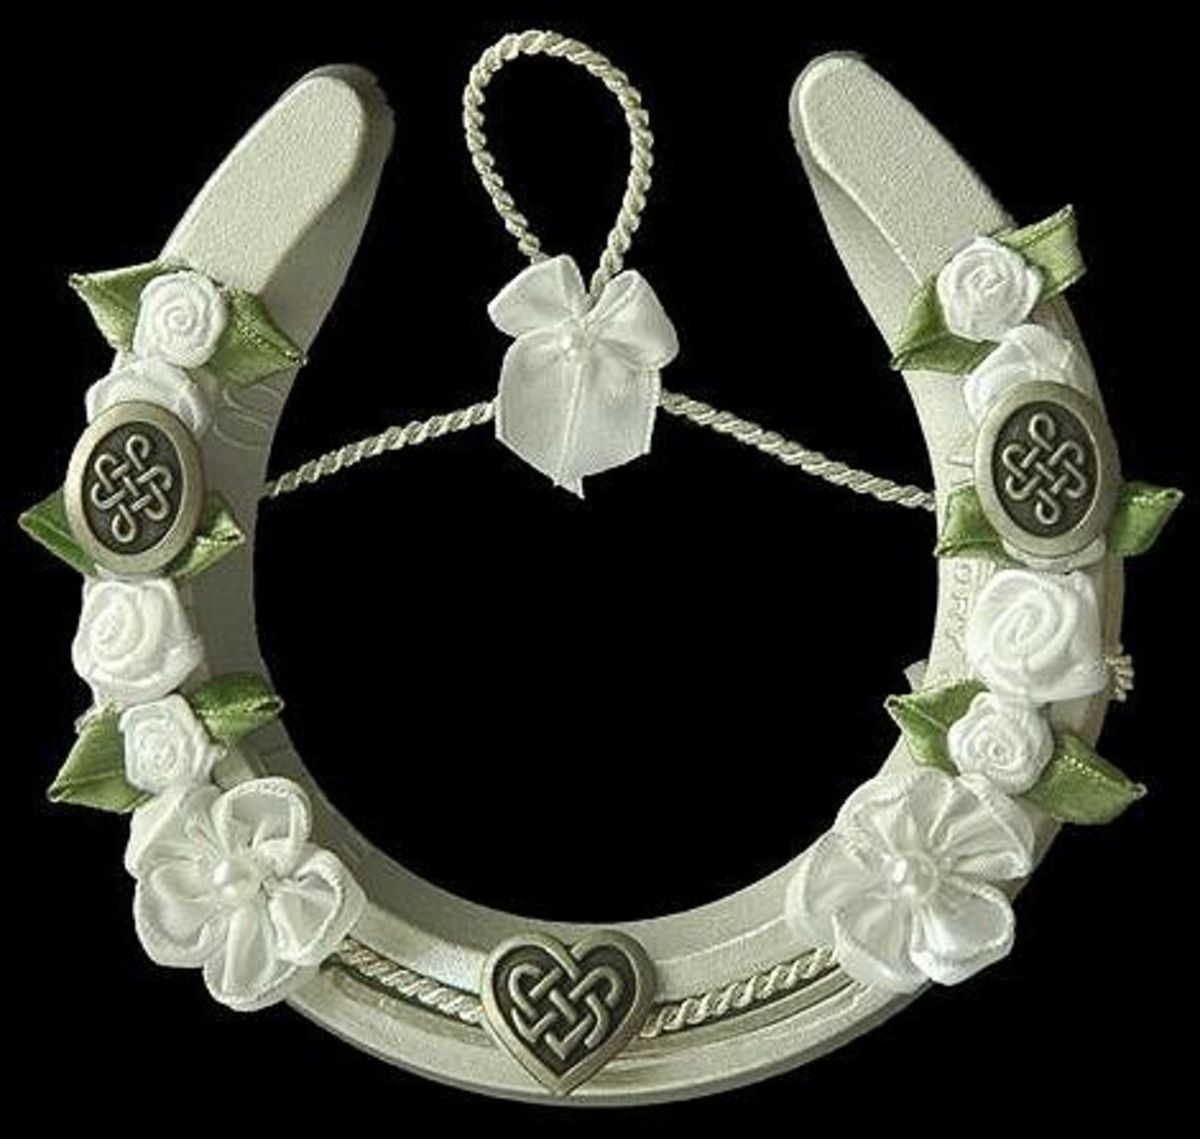 Always display a lucky horseshoe facing up so your good luck does not spill out!